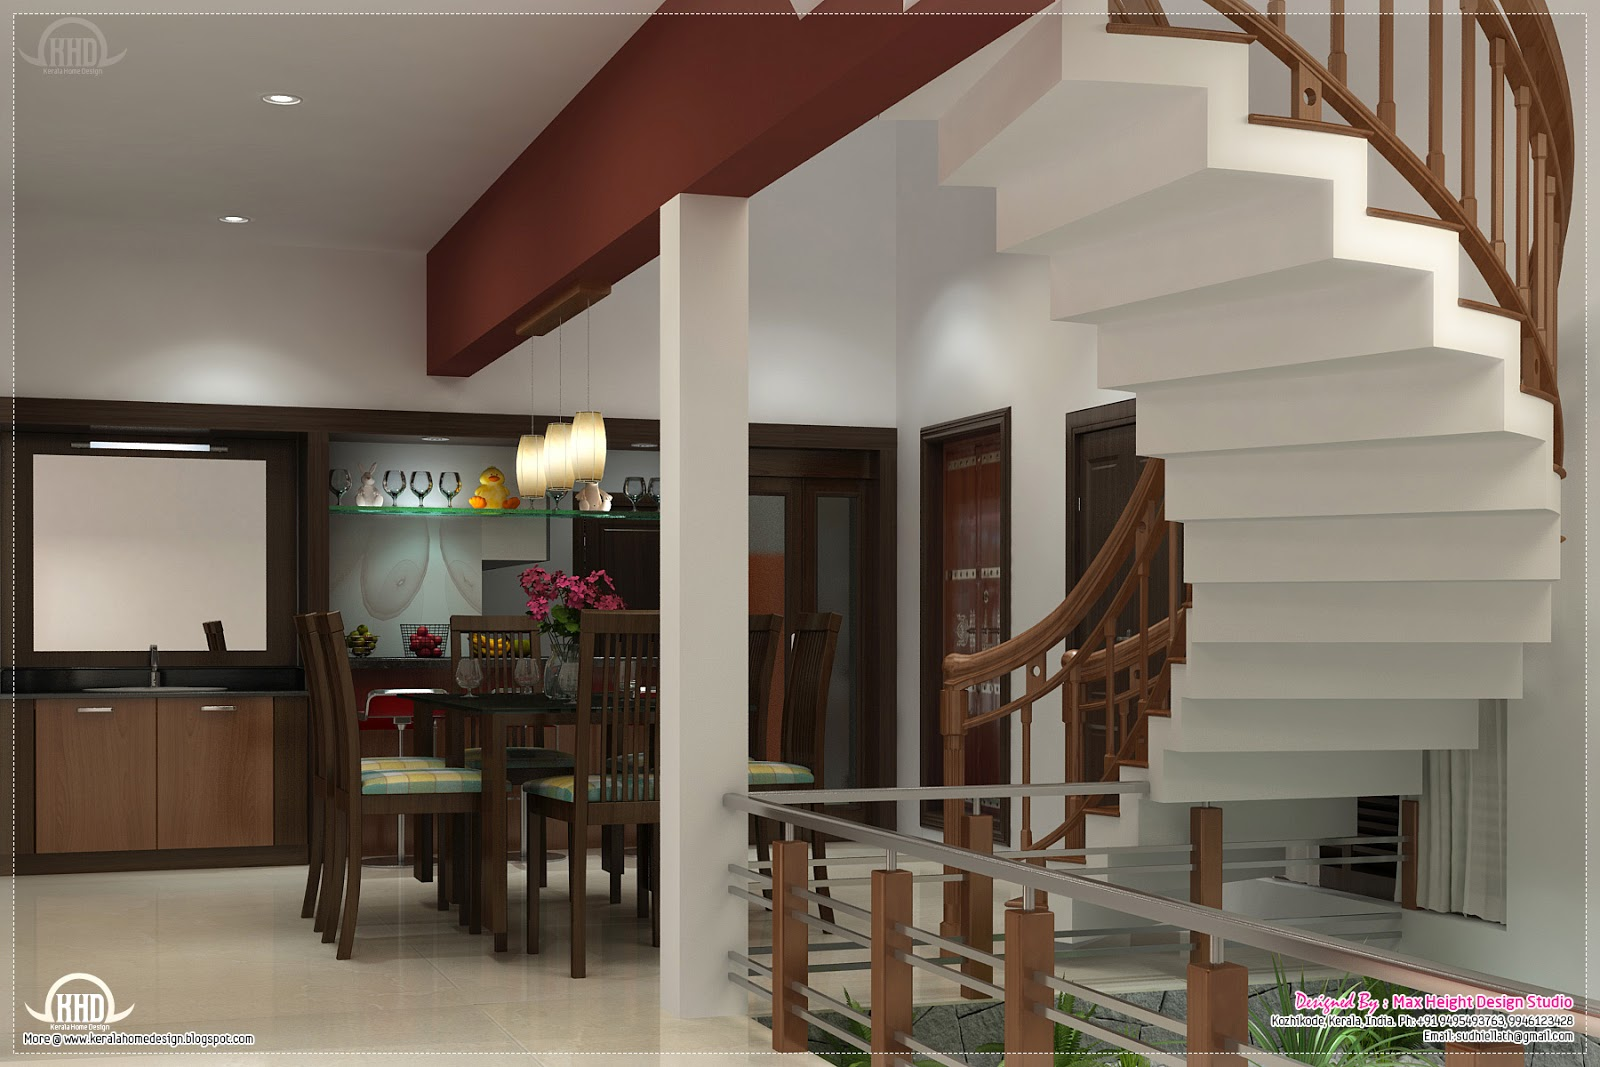 Home interior design ideas kerala home design and floor - Home interior designs ...